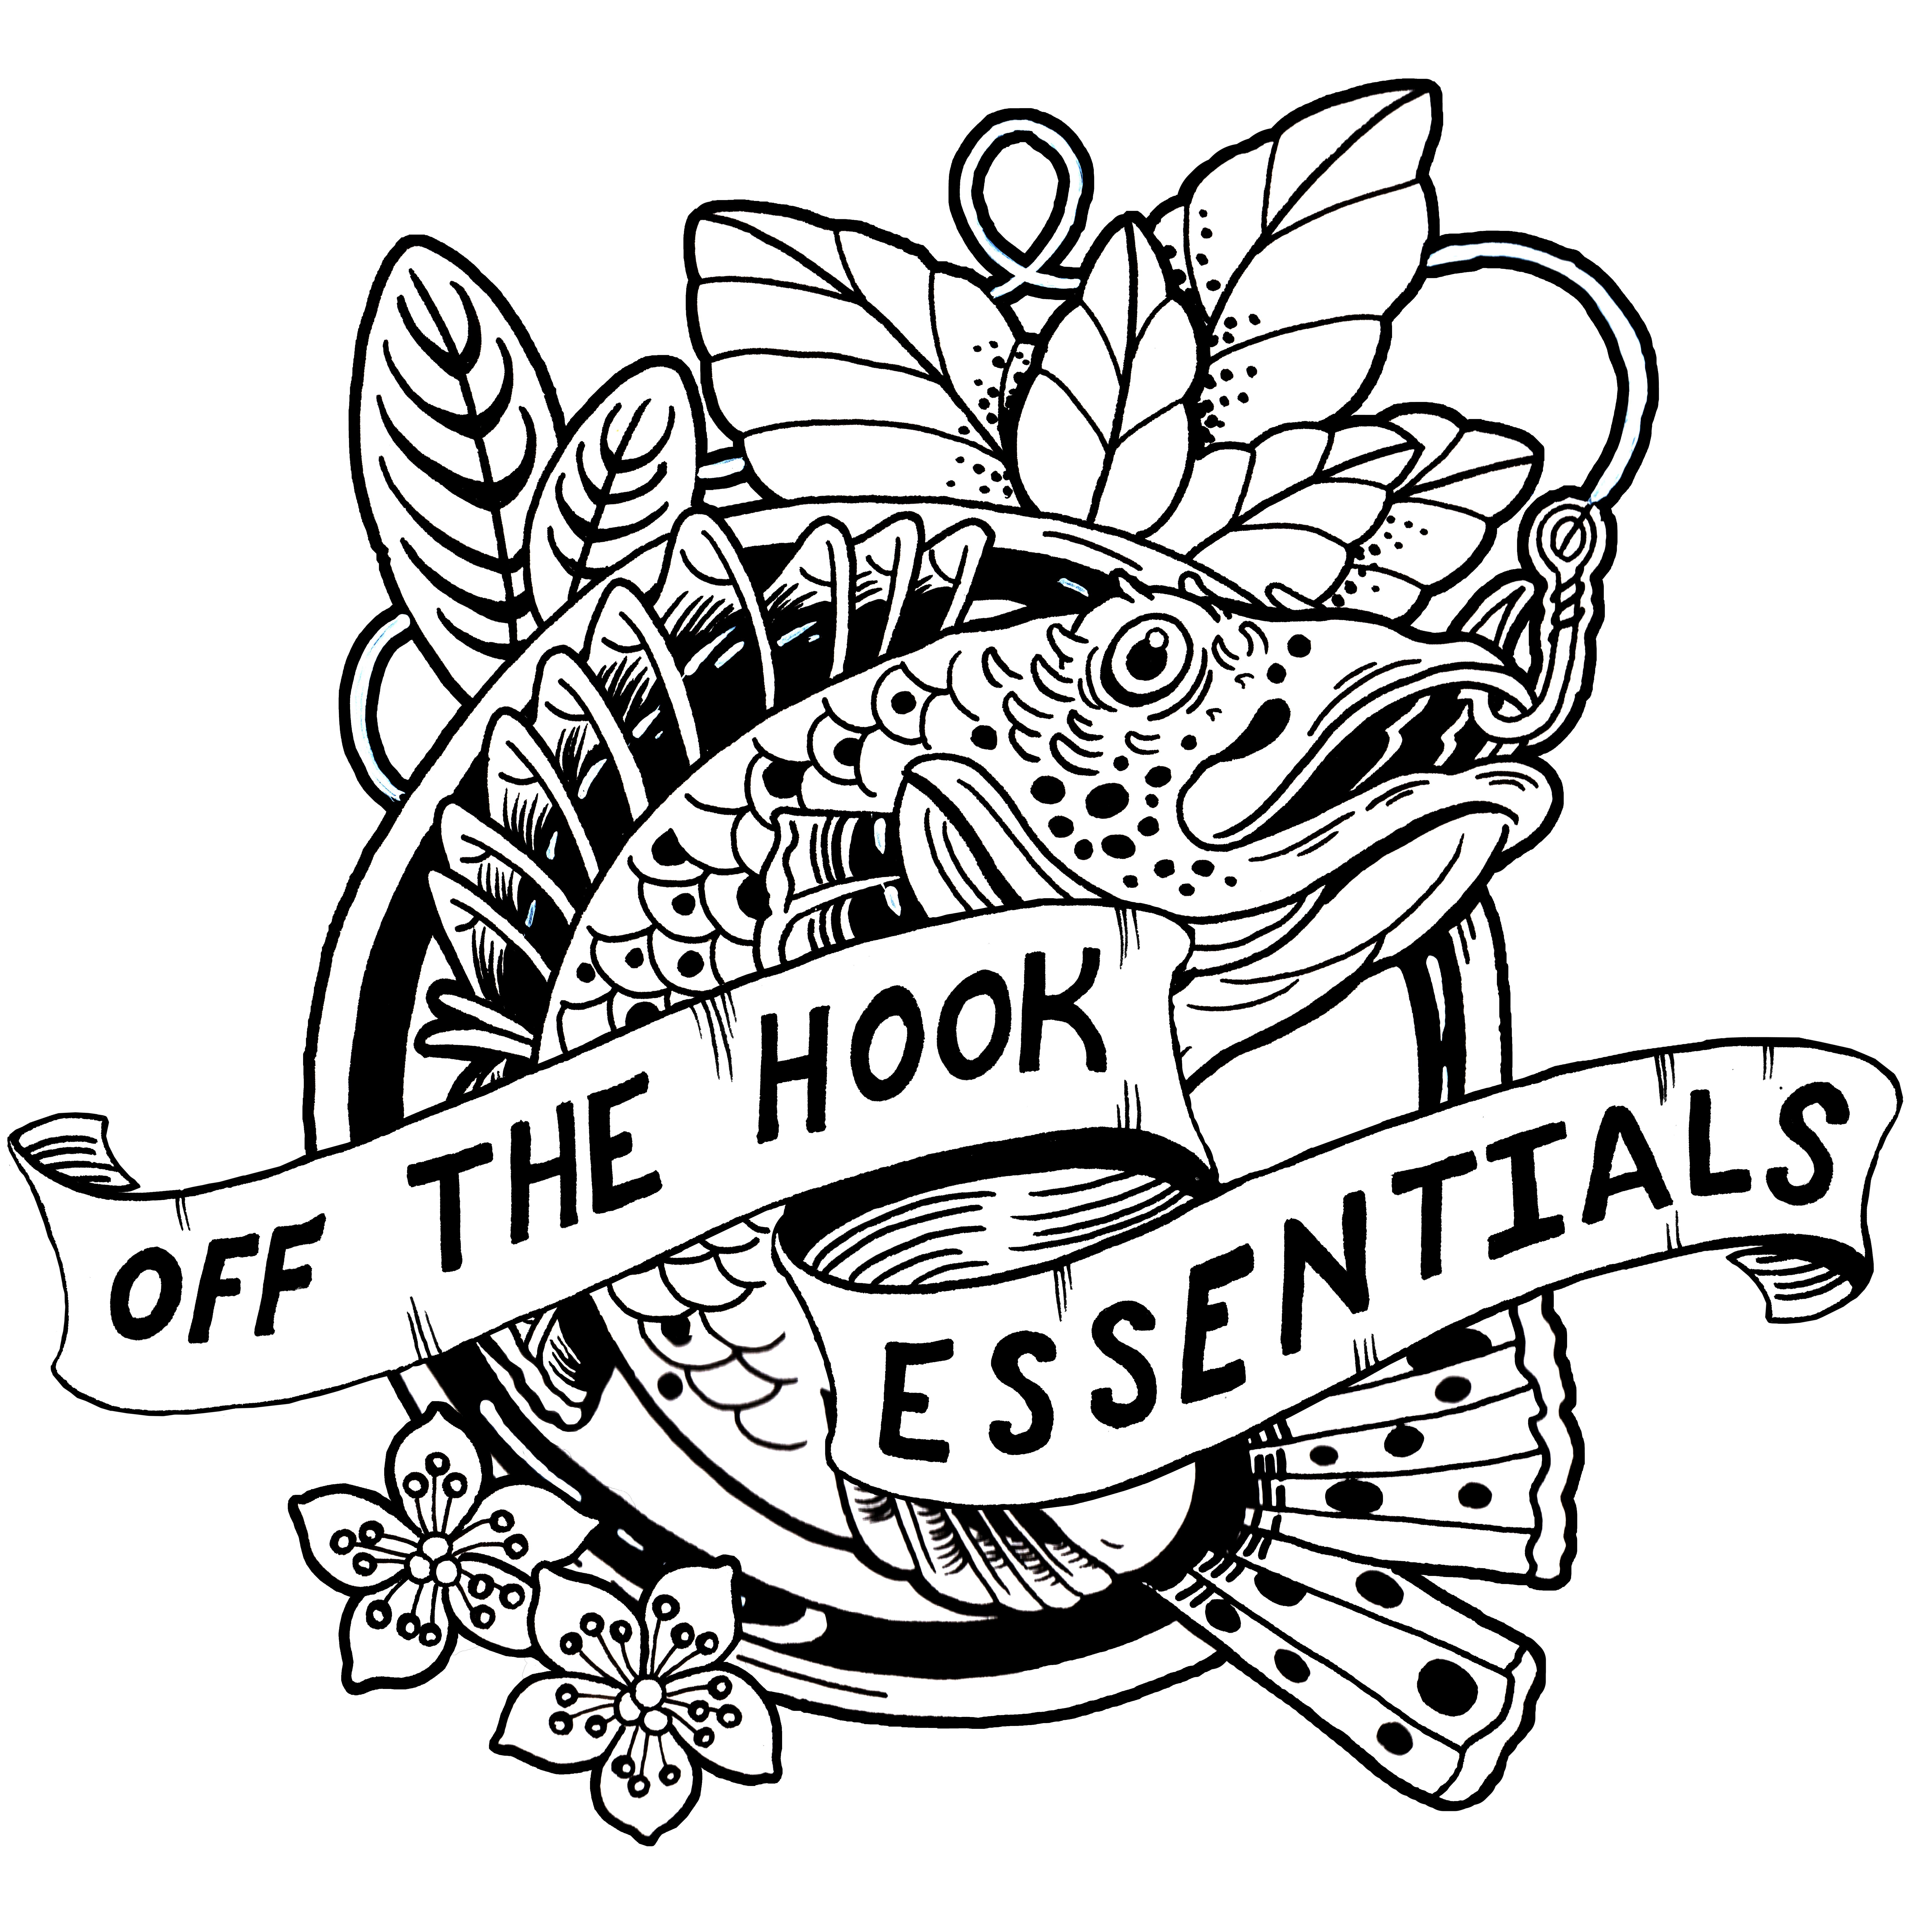 Off the Hook Essentials